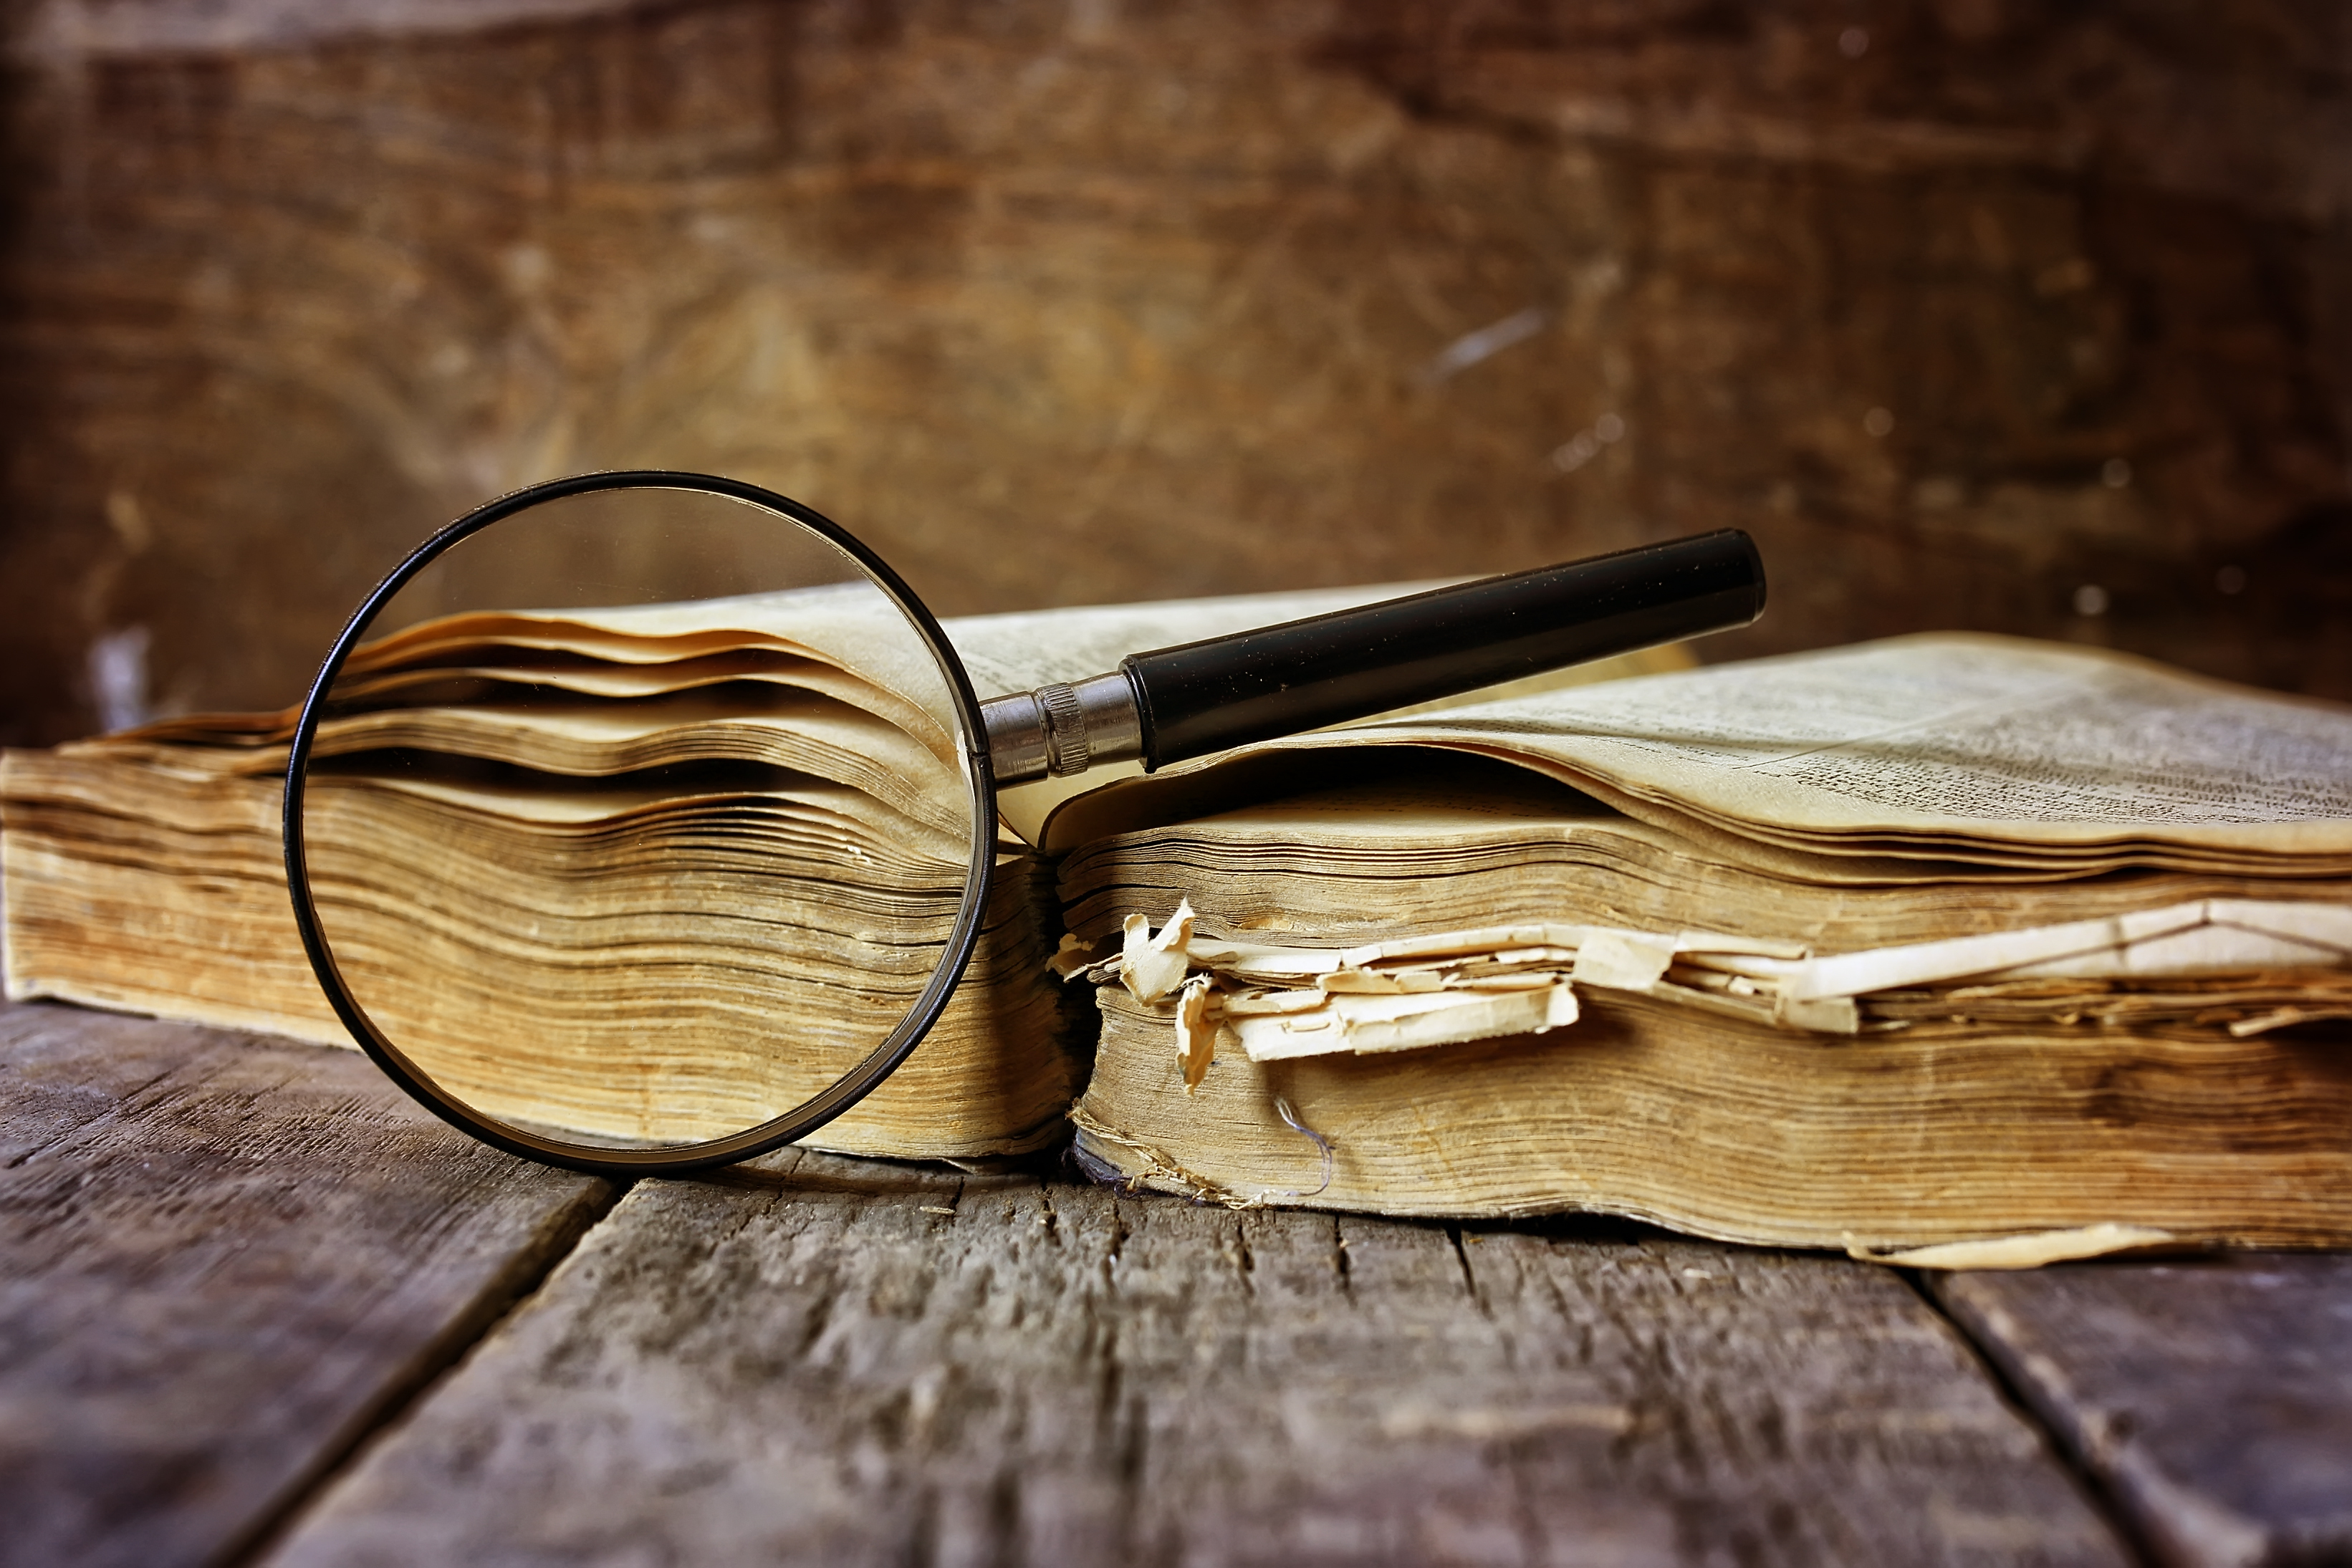 An old book and a magnifying glass